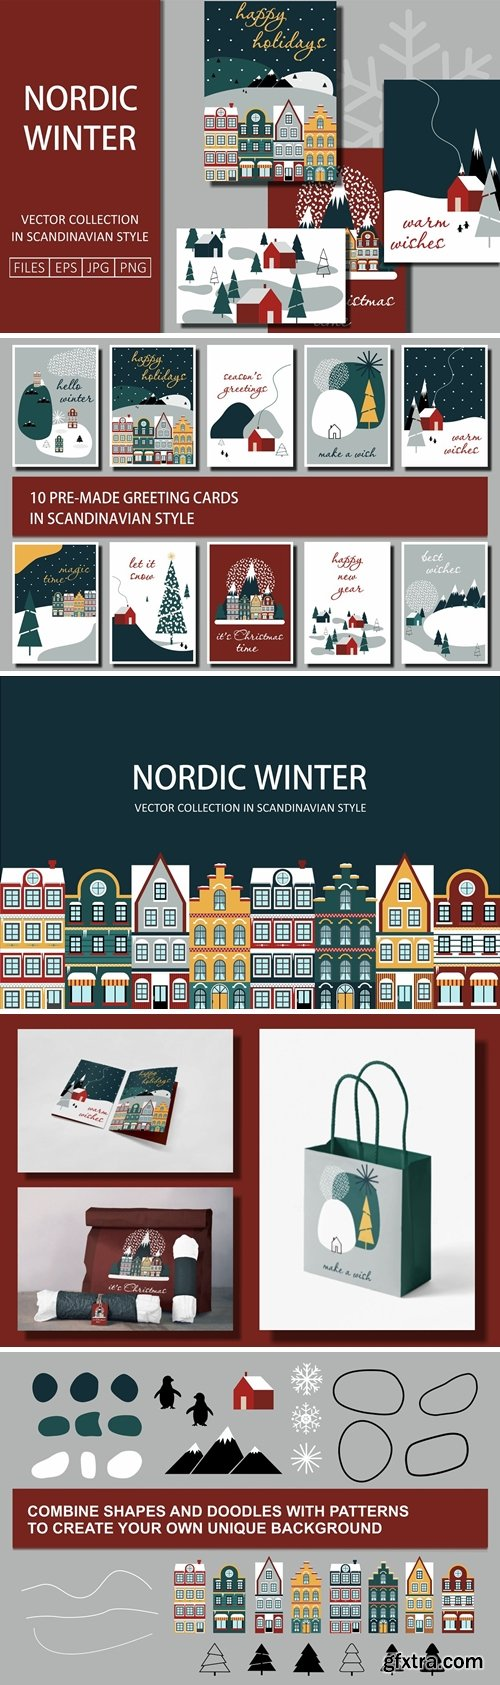 CreativeMarket - Nordic Winter Greeting Cards 5601863